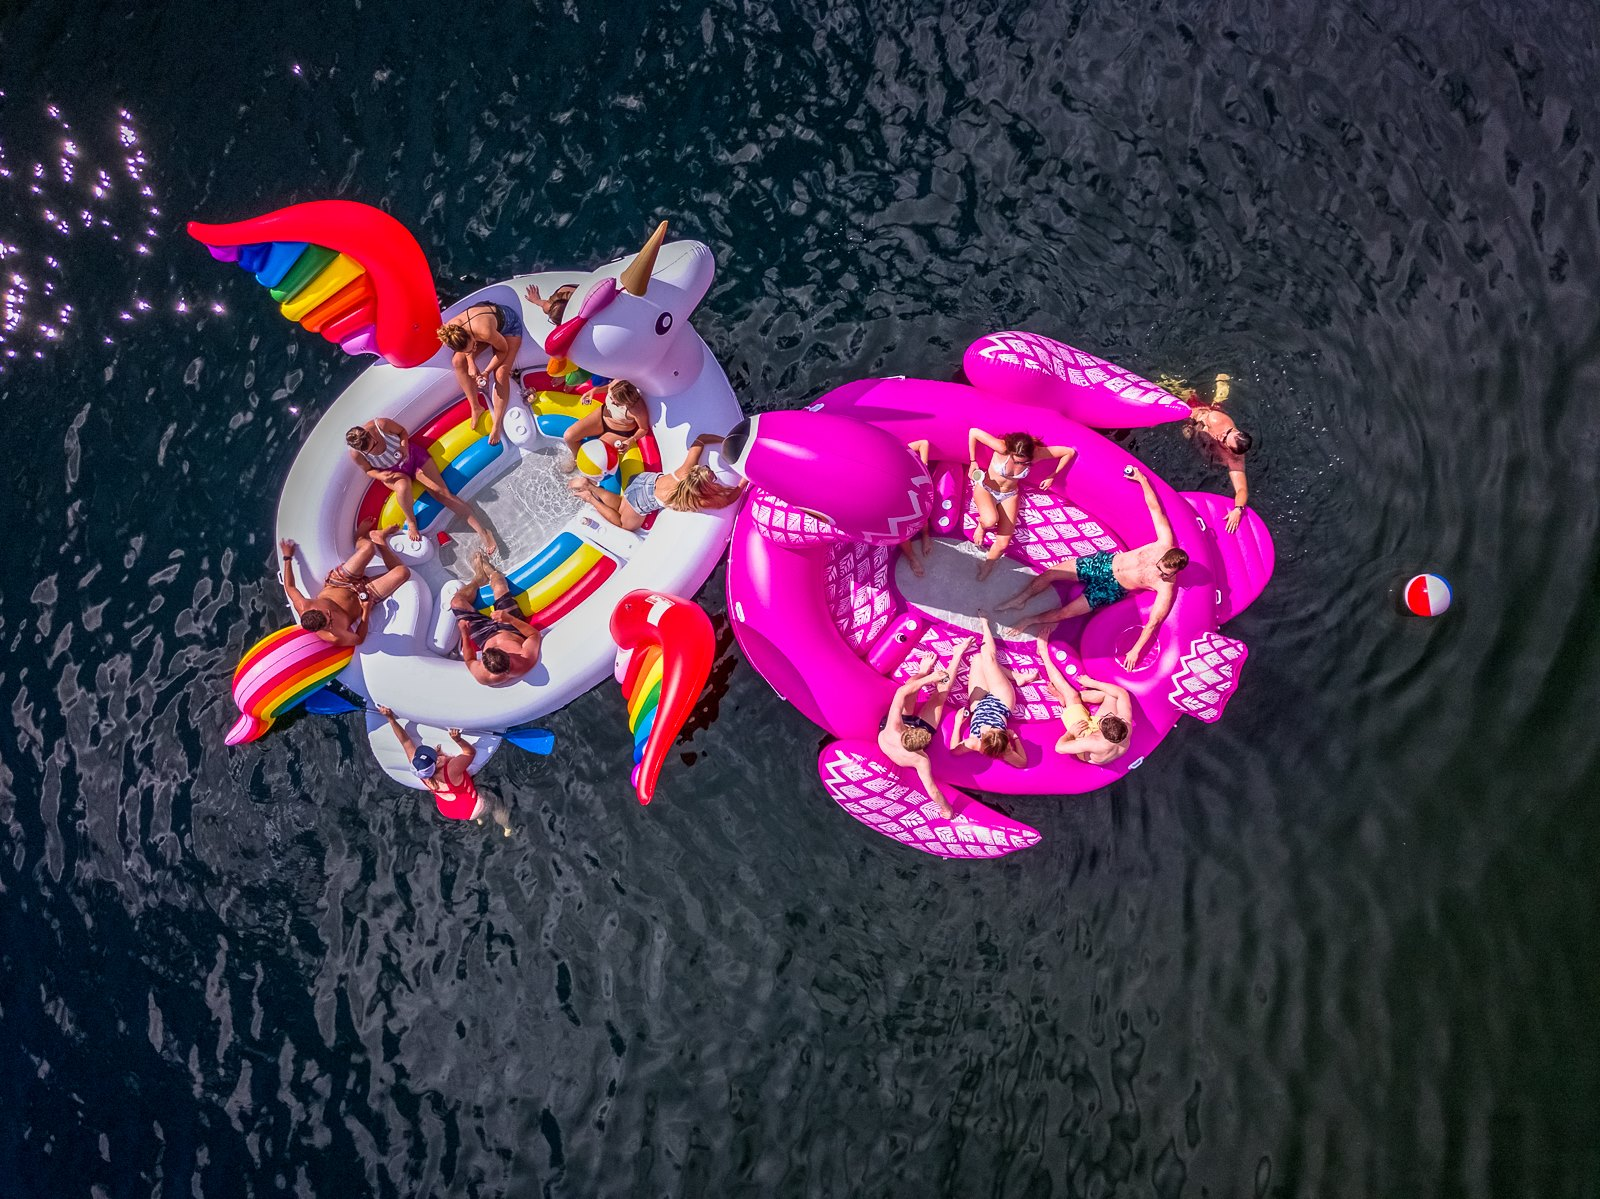 Drone shot of floats at my birthday party